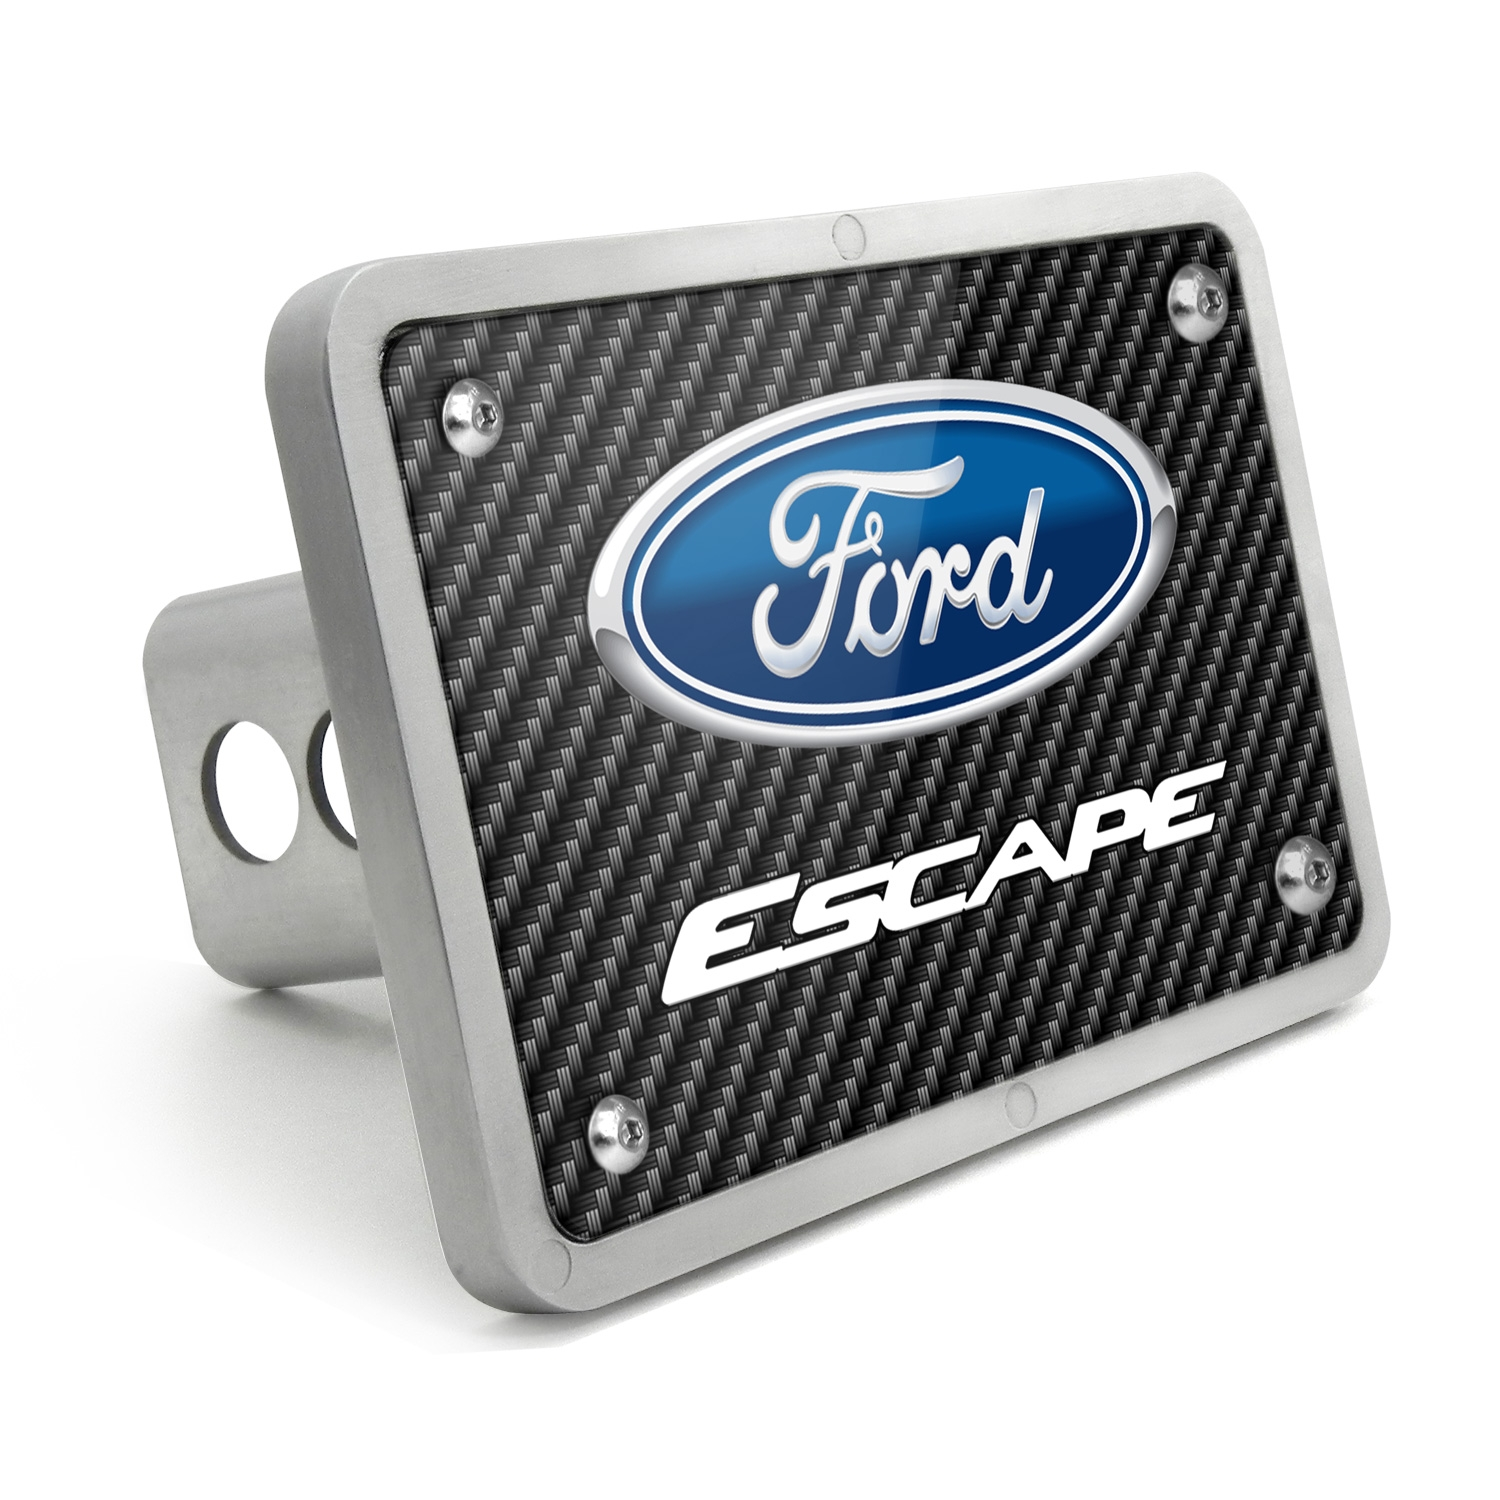 Ford Escape Black Carbon Fiber Texture Plate Billet Aluminum 2 inch Tow Hitch Cover